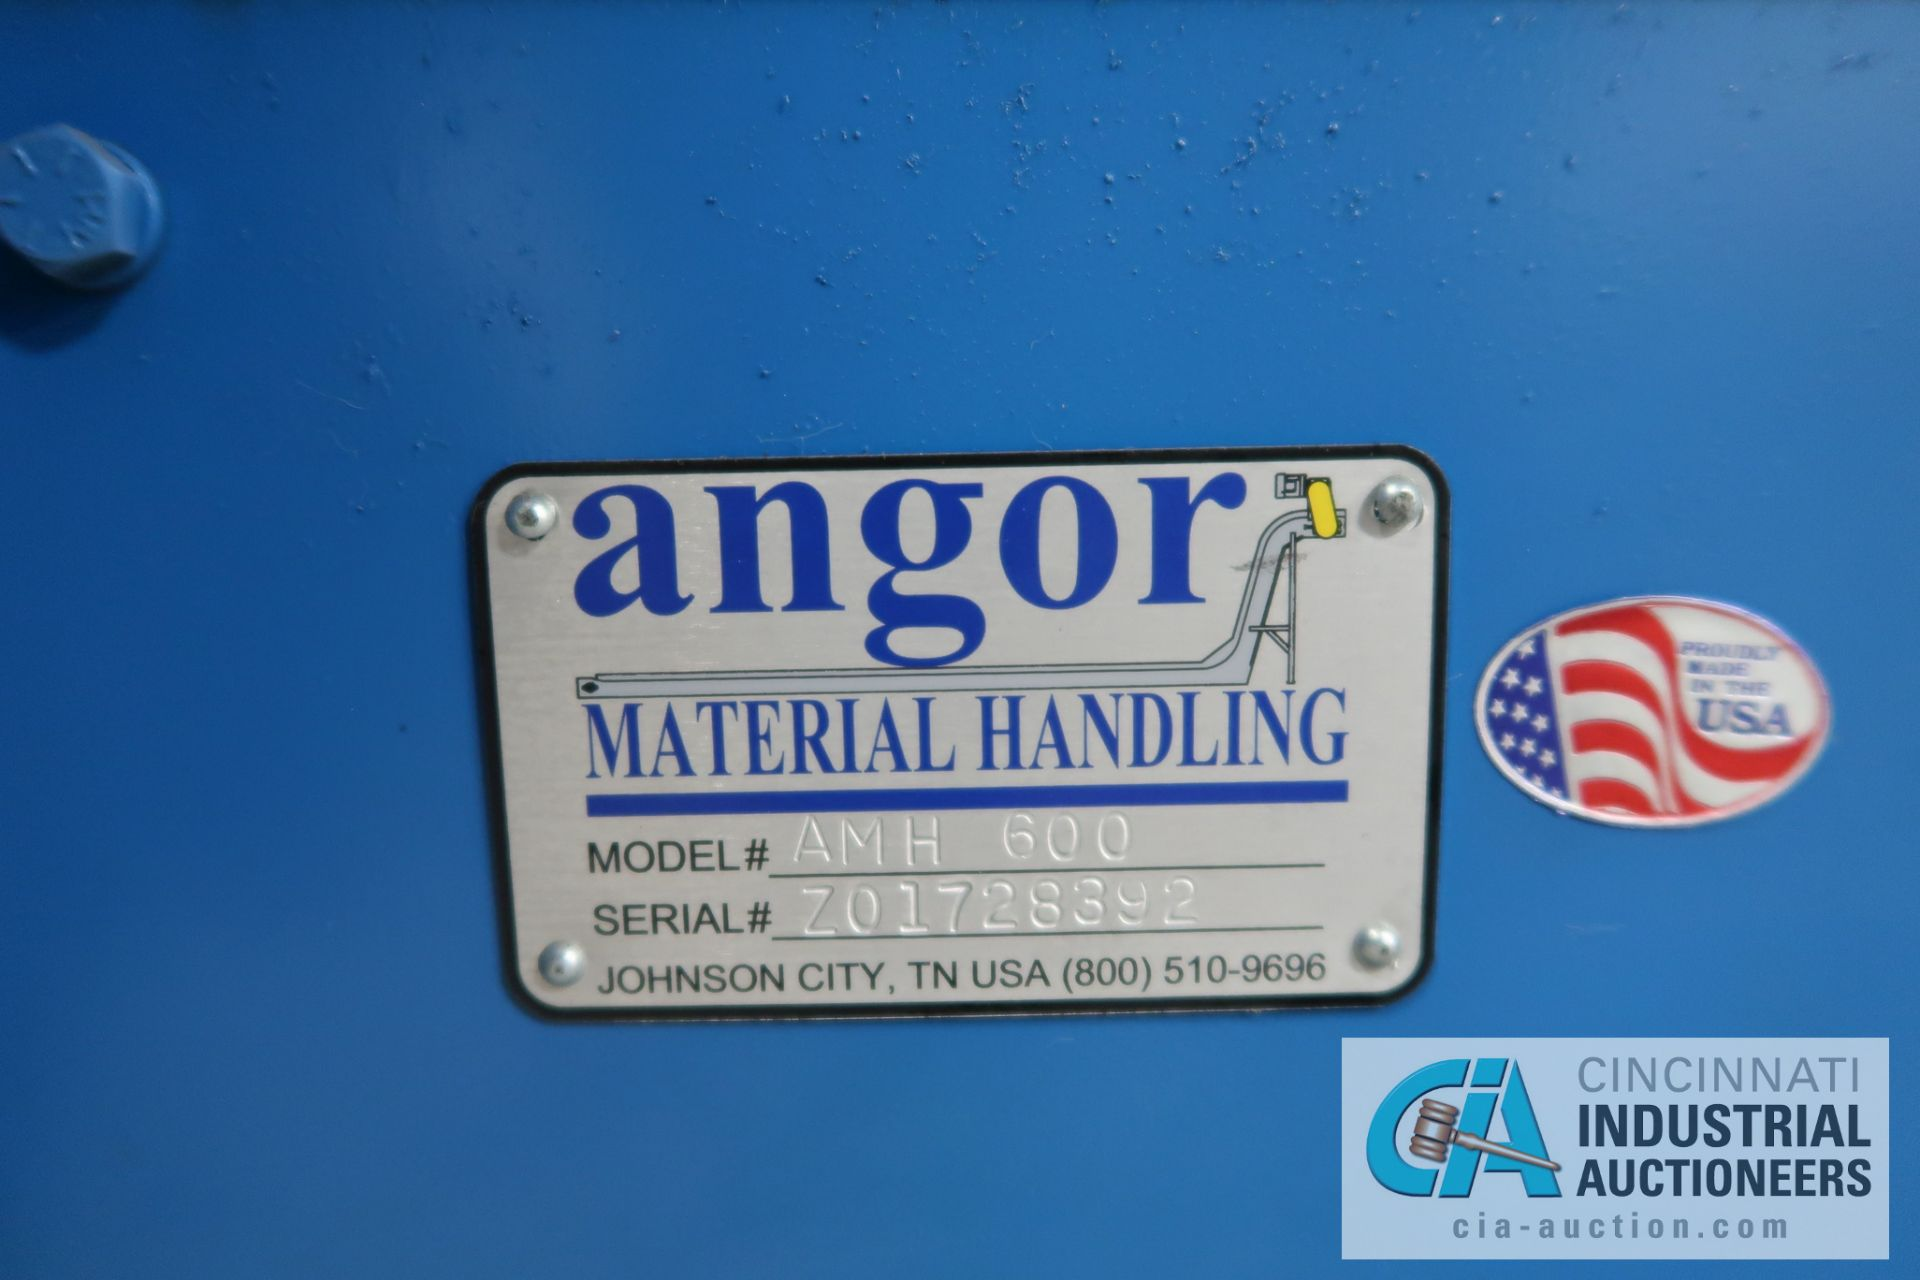 """10"""" X 78"""" ANGOR MODEL AMH600 SERIES BUCKET LOADER; S/N Z01728392, WITH PENTA-DRIVE DC MOTOR SPEED - Image 5 of 5"""